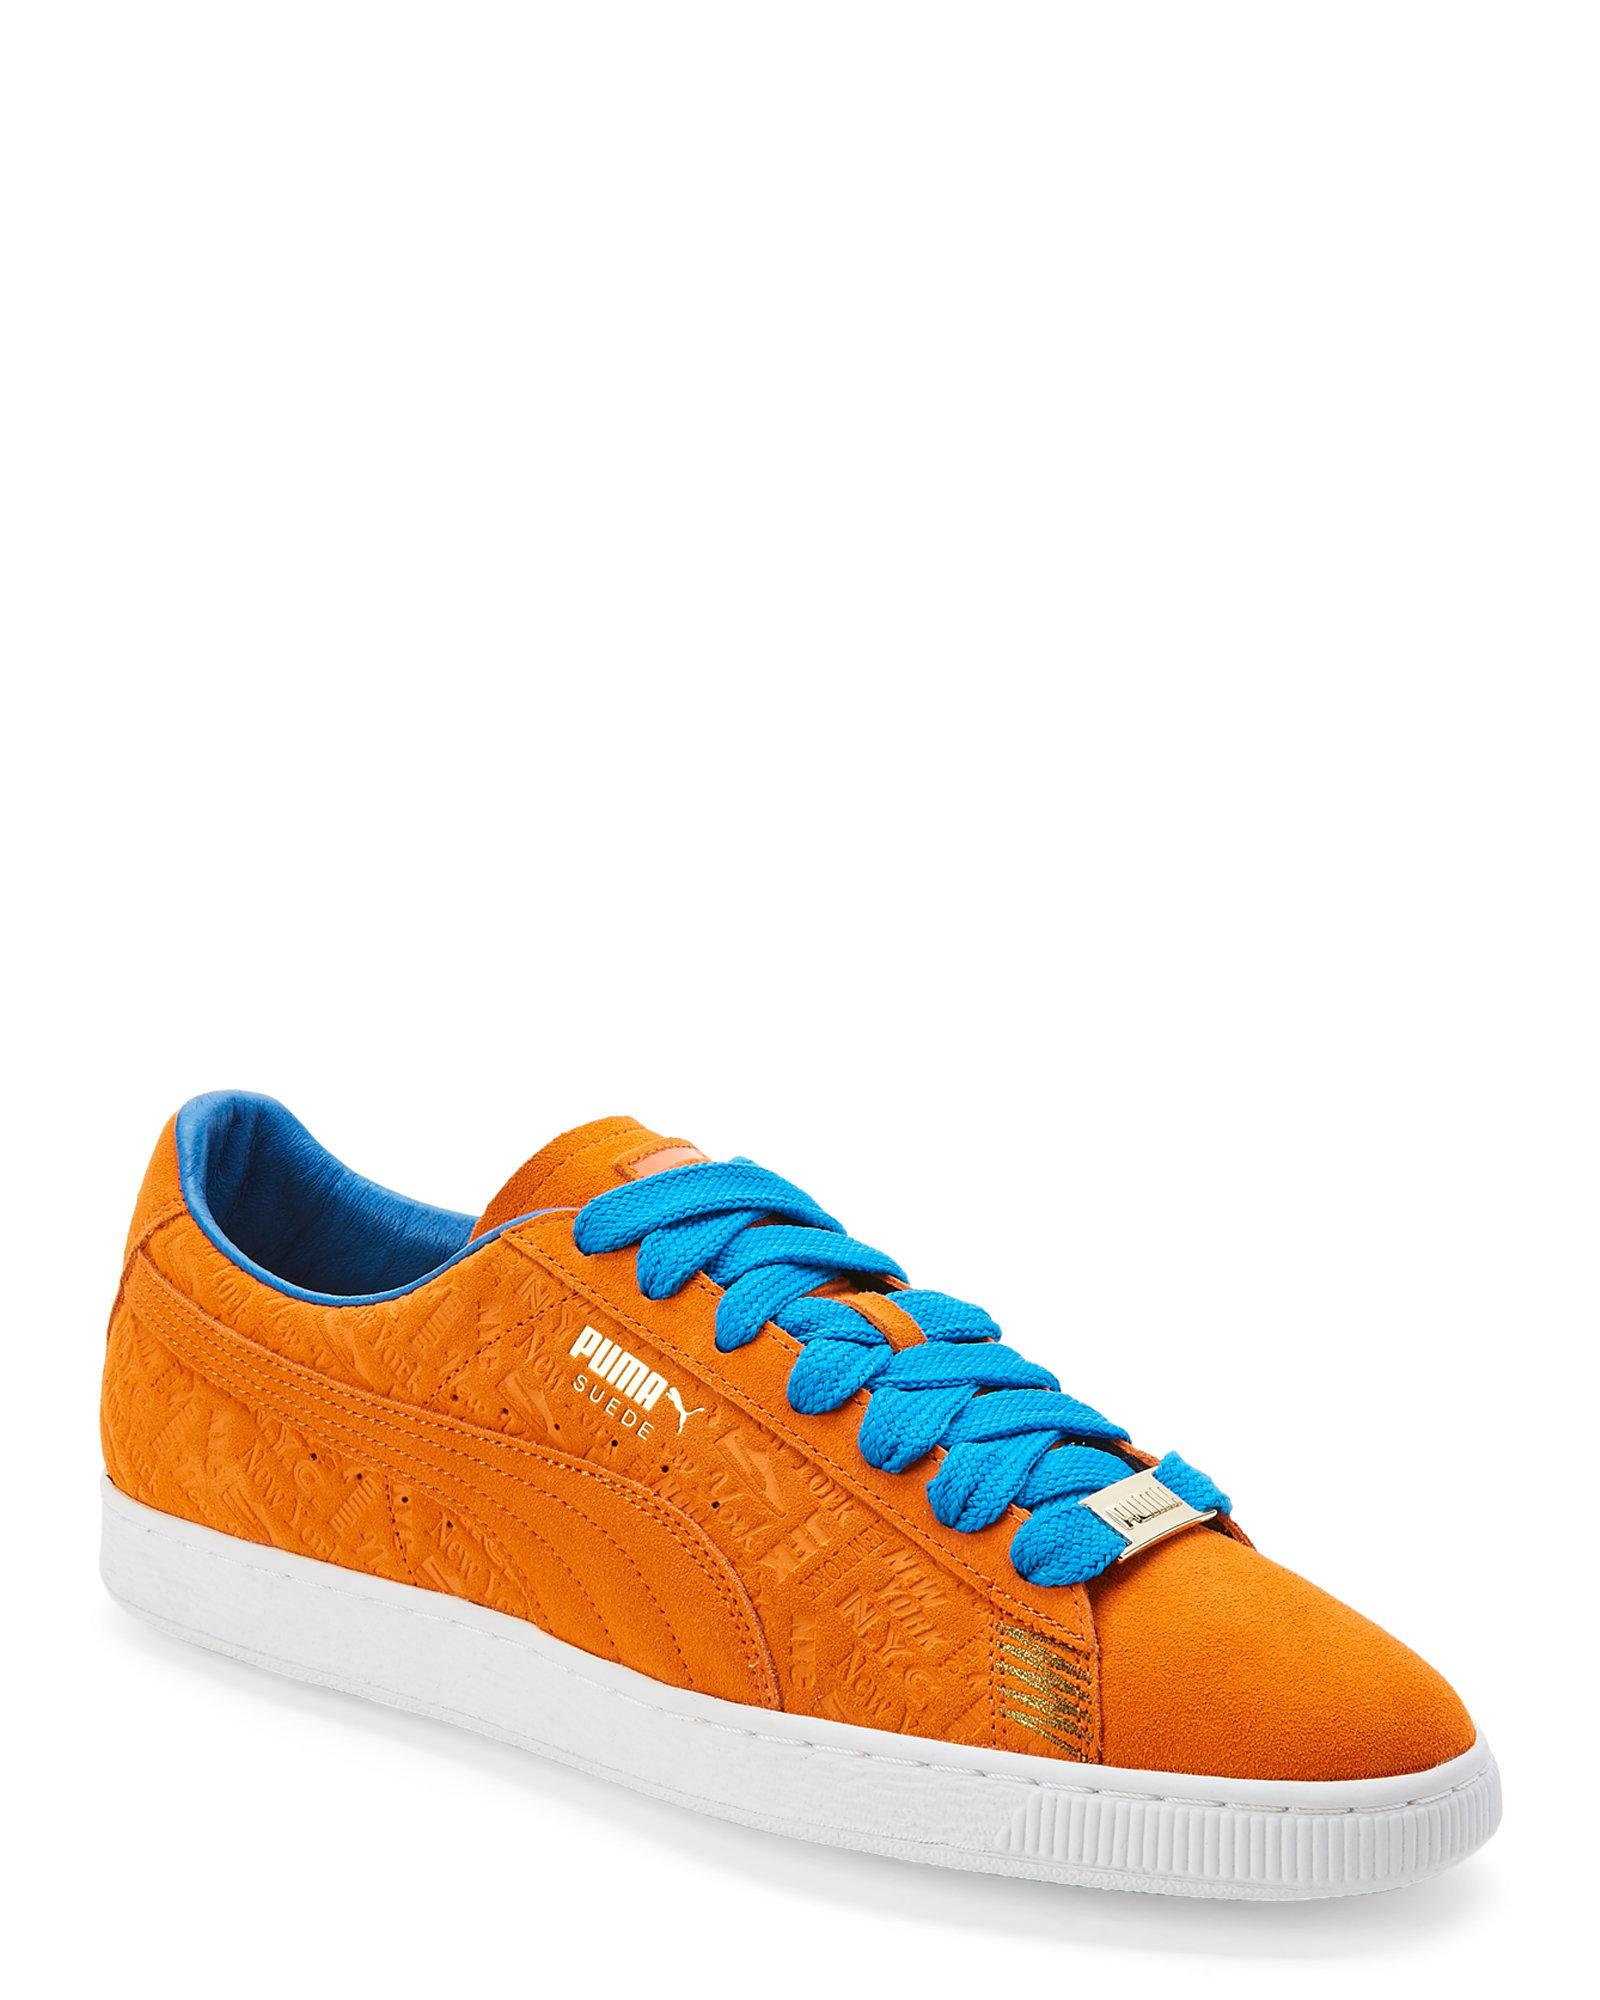 half off e337e abc9e Men's Orange & Blue Suede Classic New York Knicks Sneakers